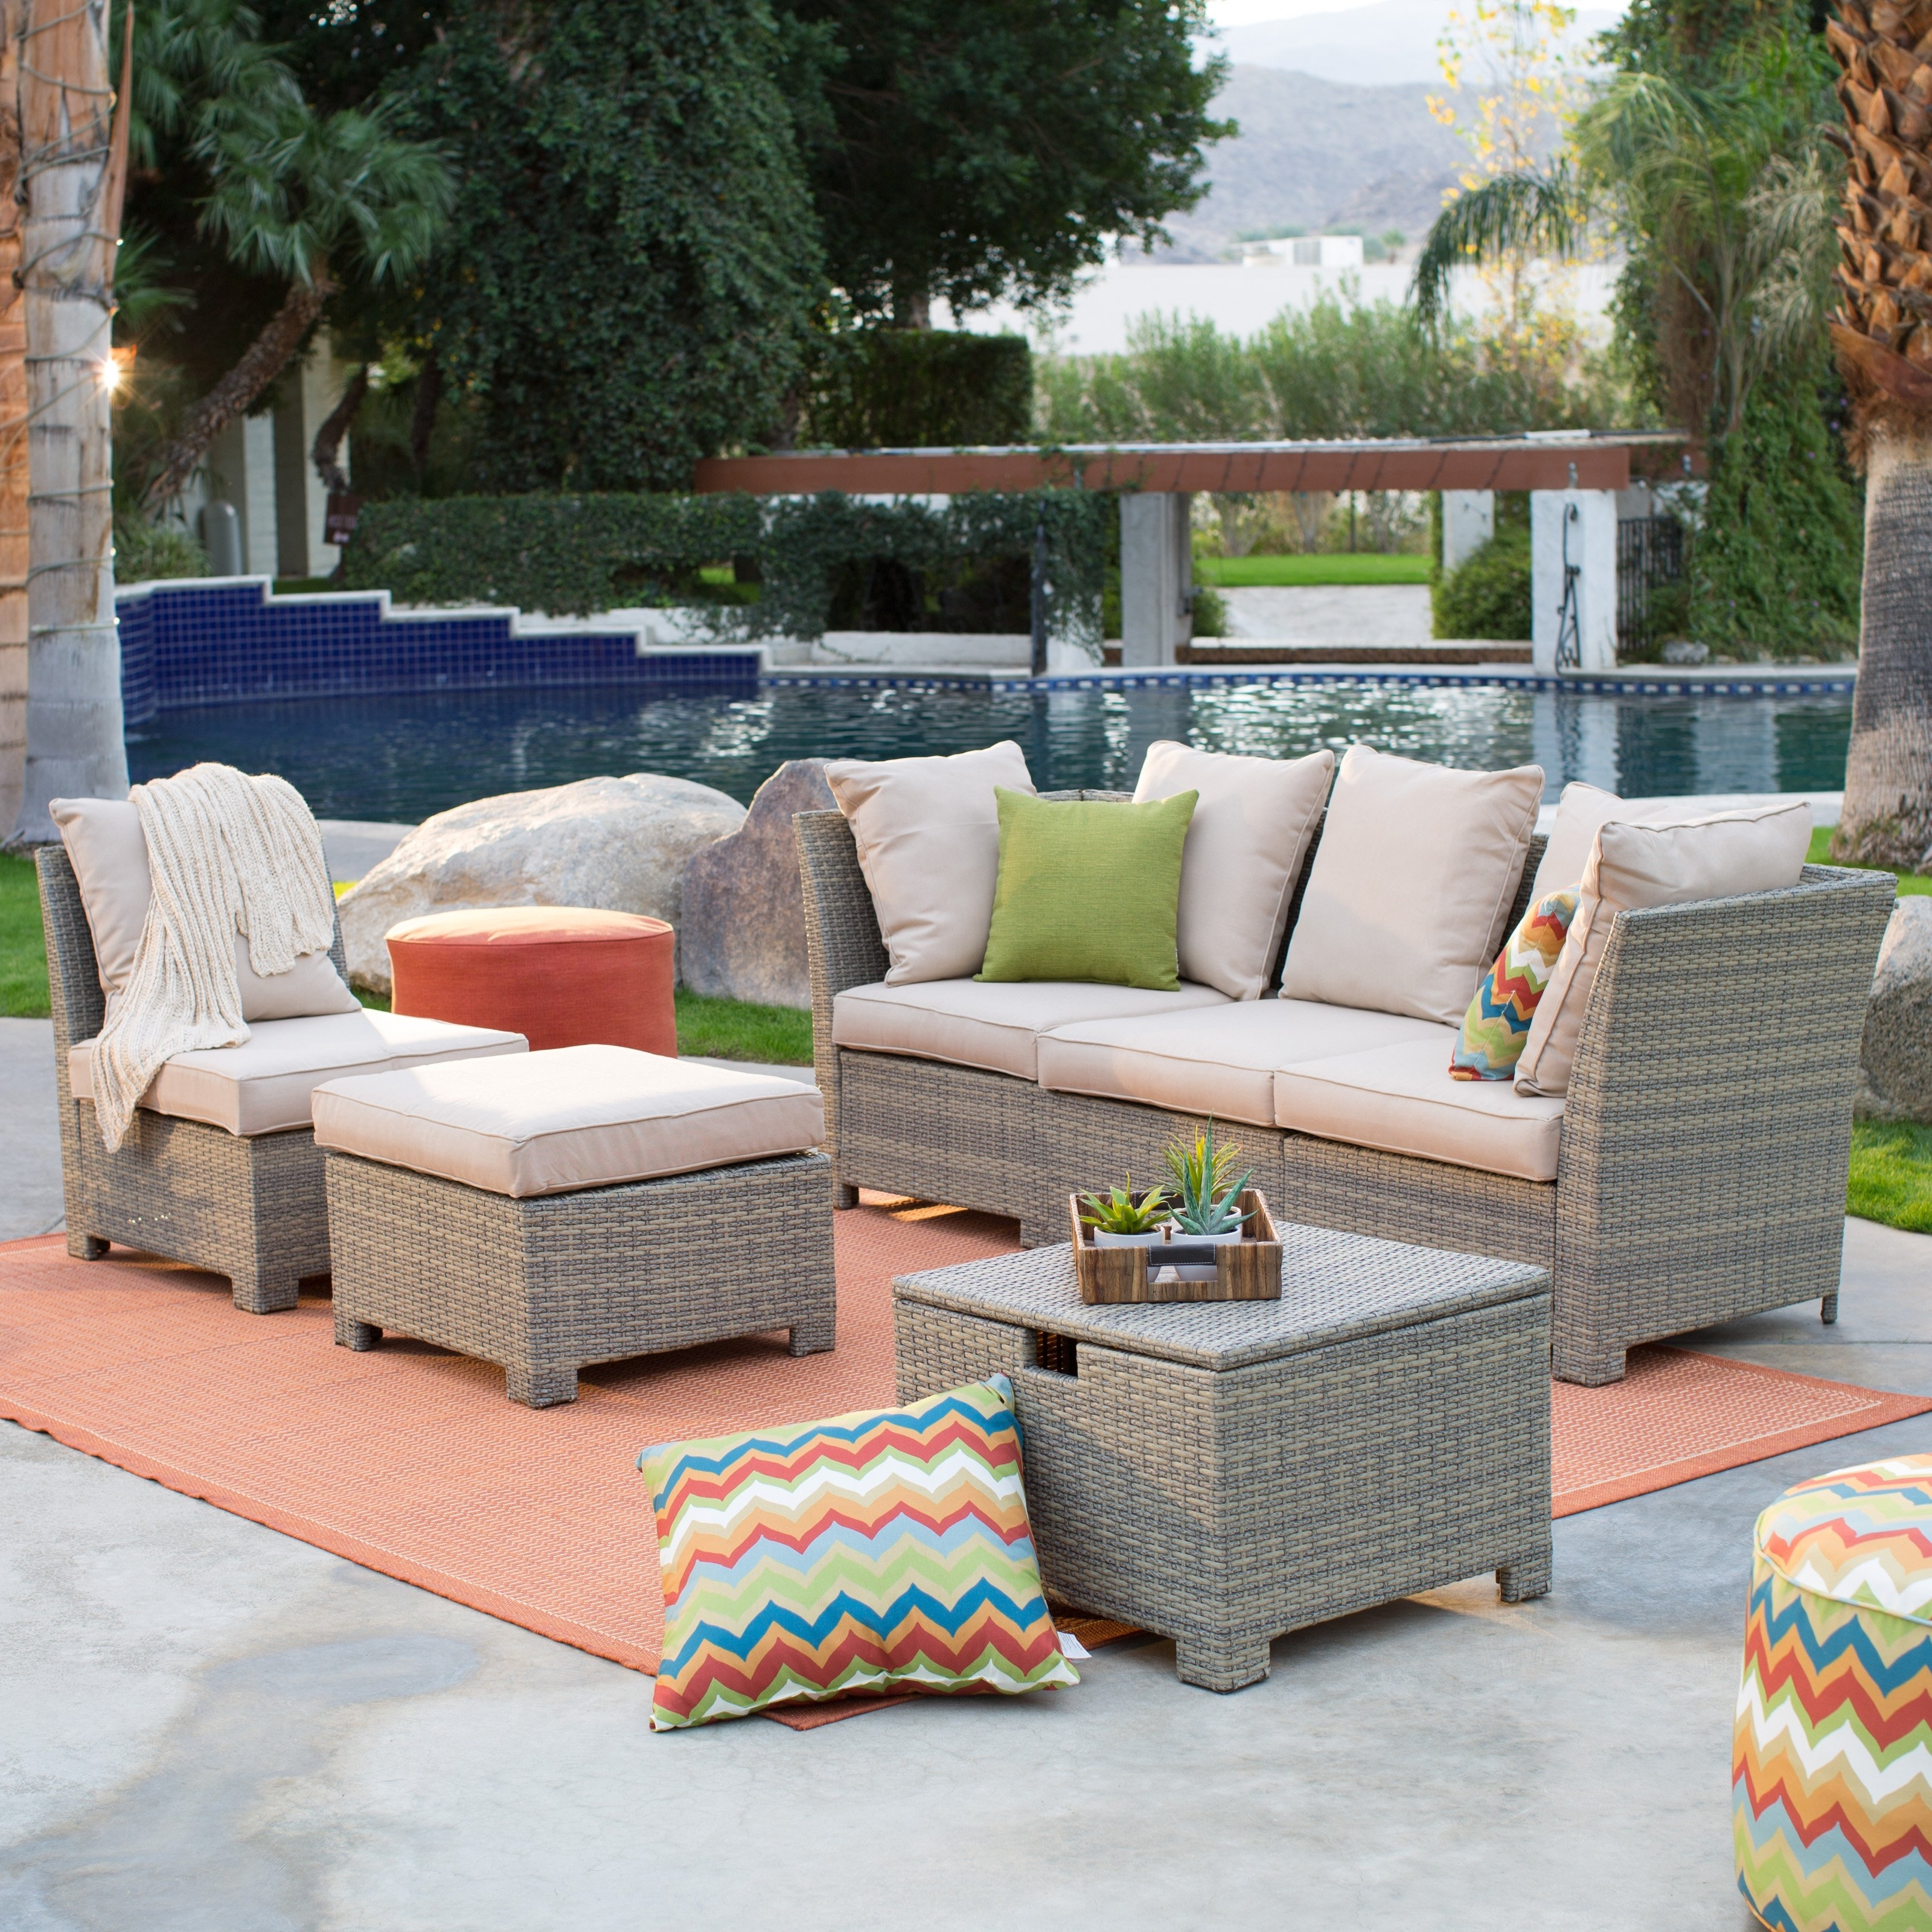 Well Known Patio Conversation Sets With Swivel Chairs For Patio : Kroger Patio Furniture Kroger Outdoor Furniture (View 18 of 20)